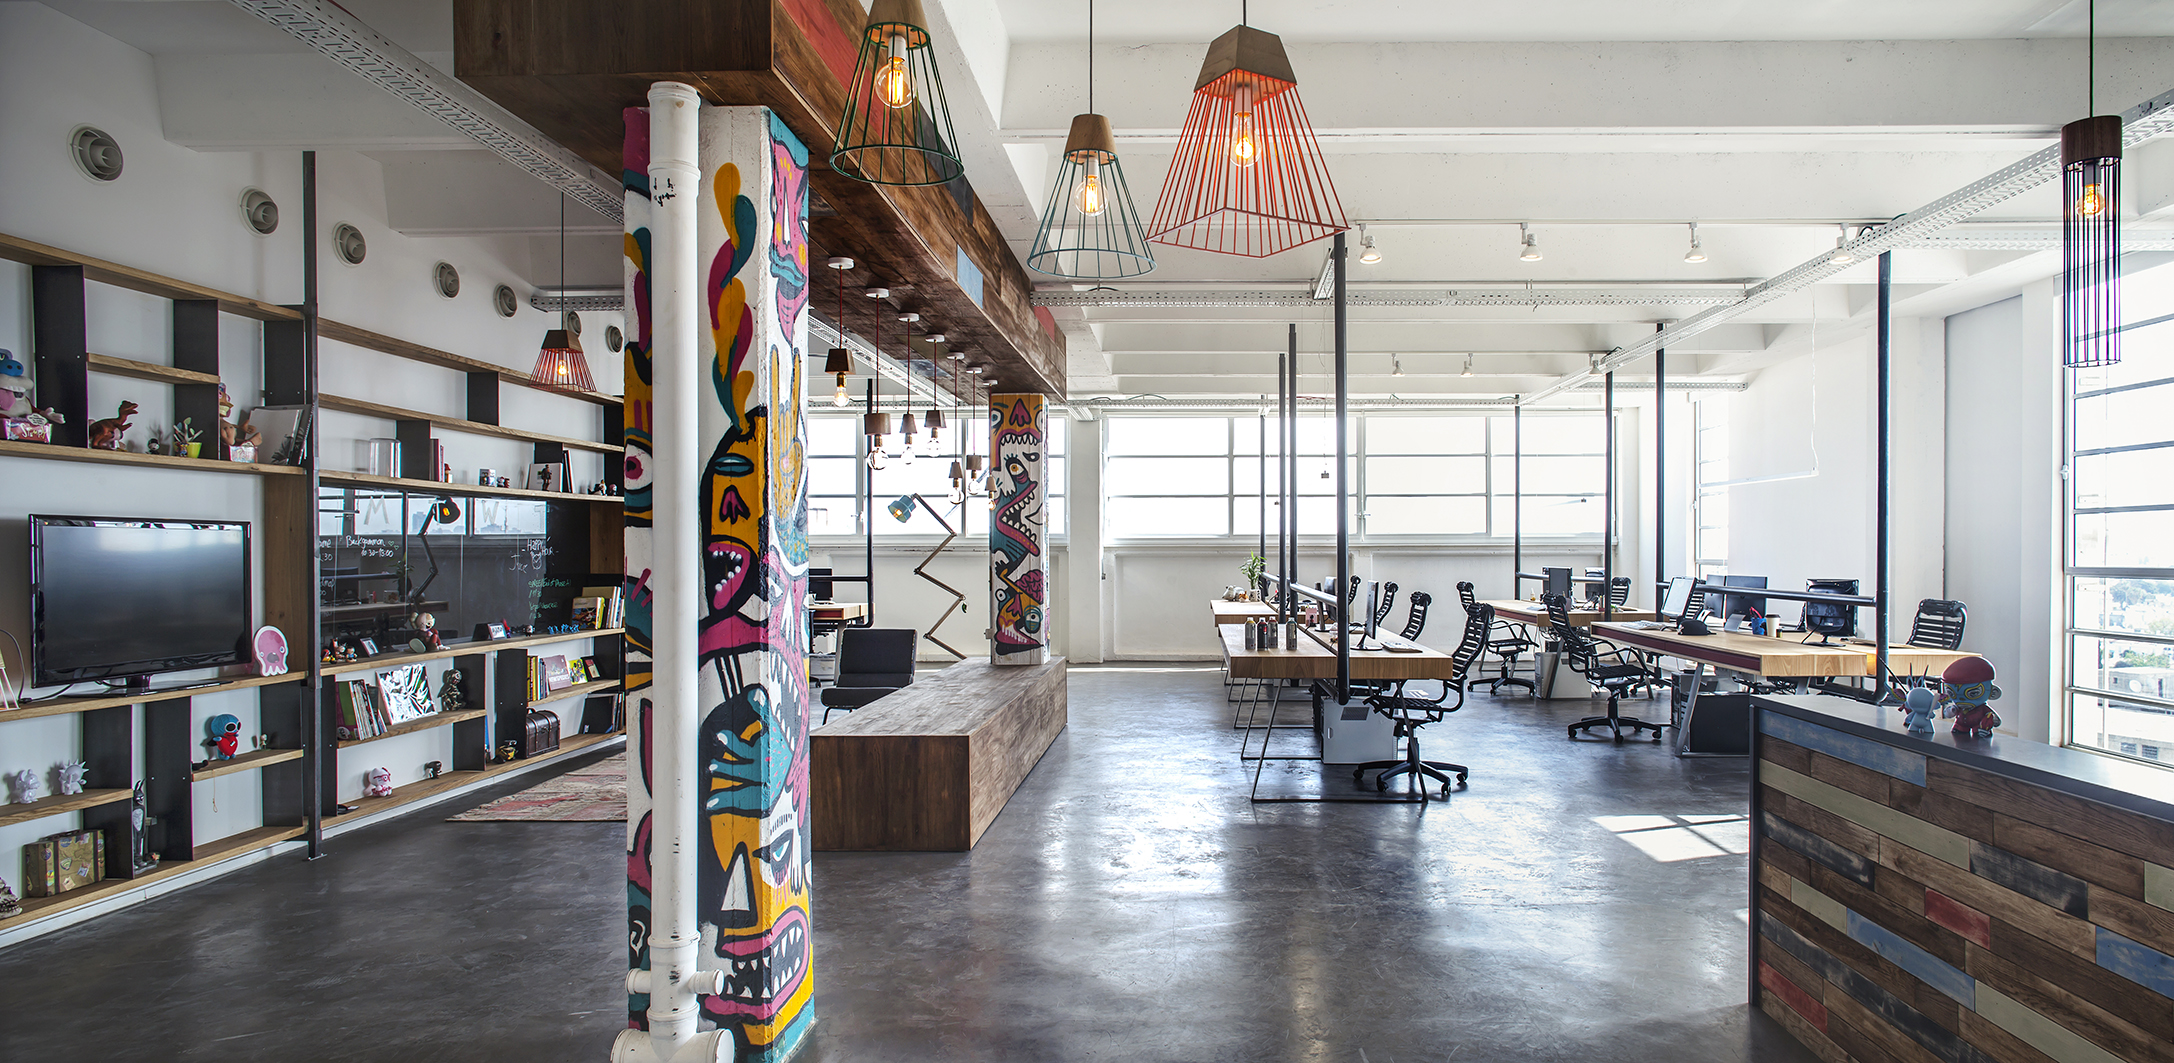 JELLYBUTTON GAMES   Edgy, playful and laid-back were the three main aspects Jellybtn and Hamutzim Studio wanted for their industrial new office space. Situated in an industrial low-fi loft on Shoken st' the space was ...